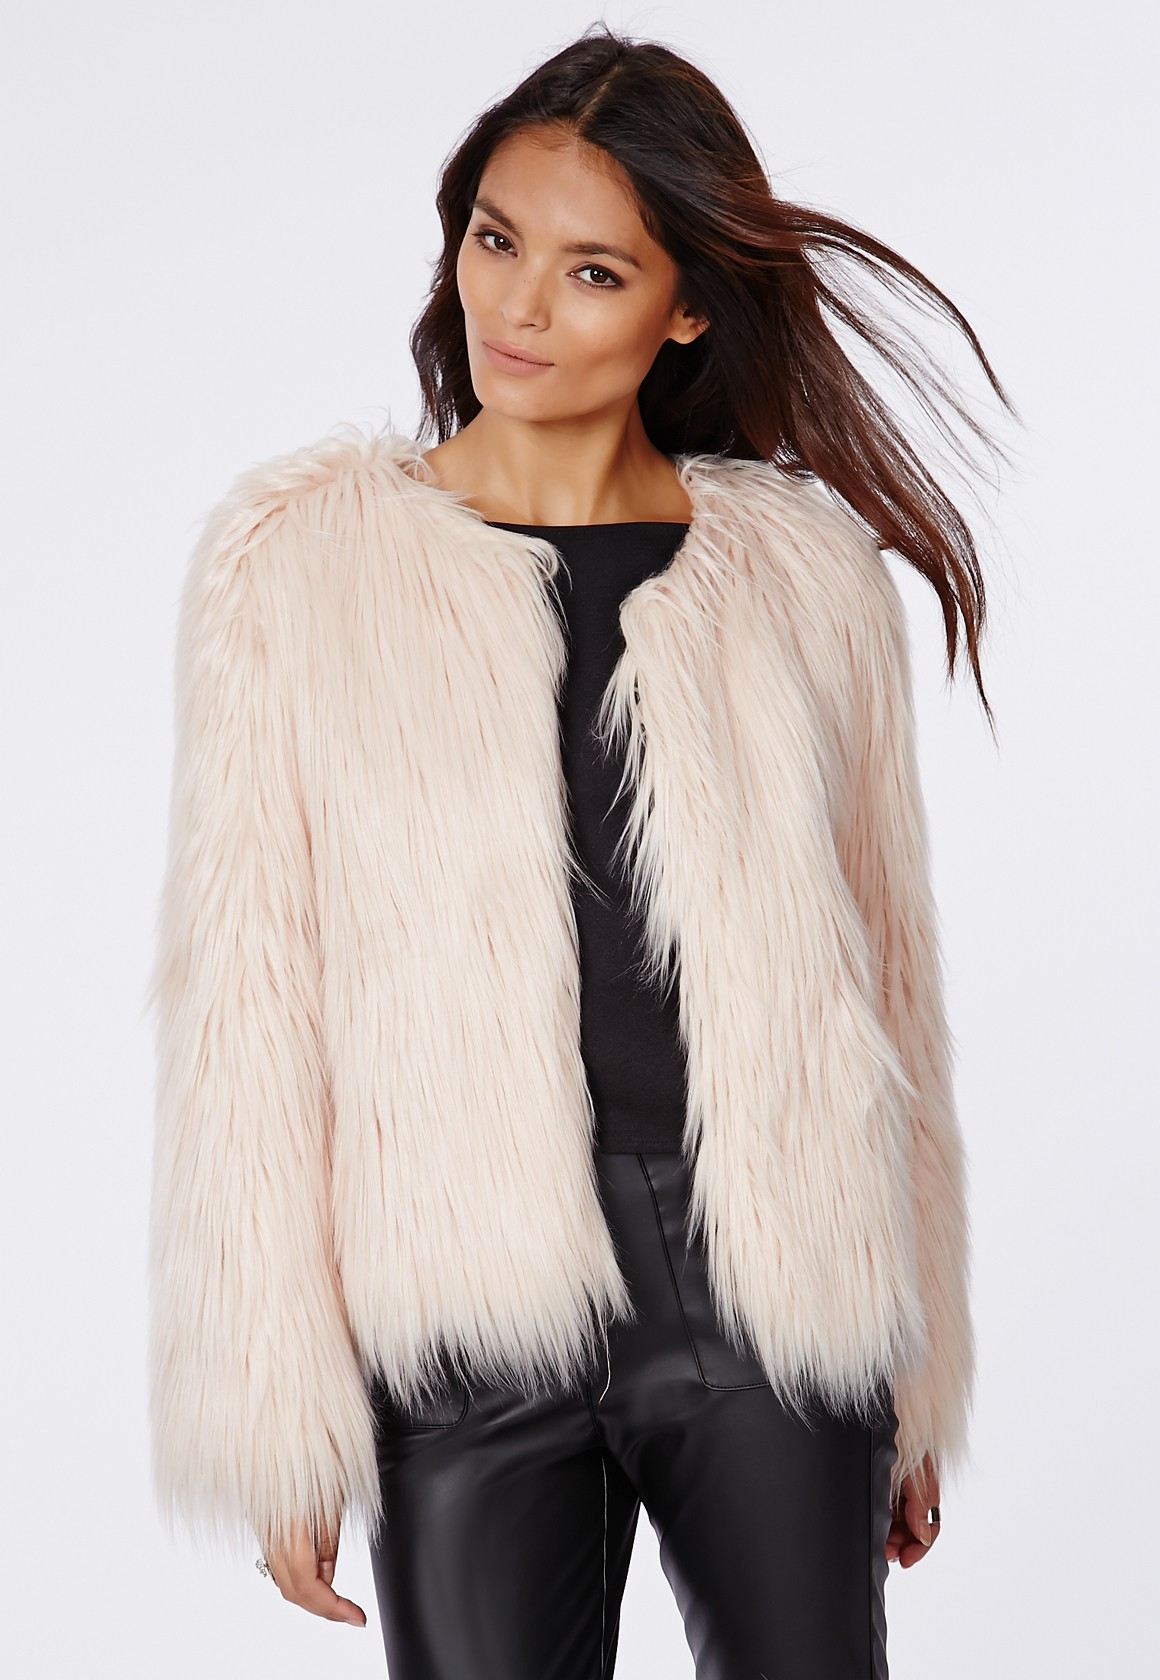 Shop for and buy fur coats online at Macy's. Find fur coats at Macy's.